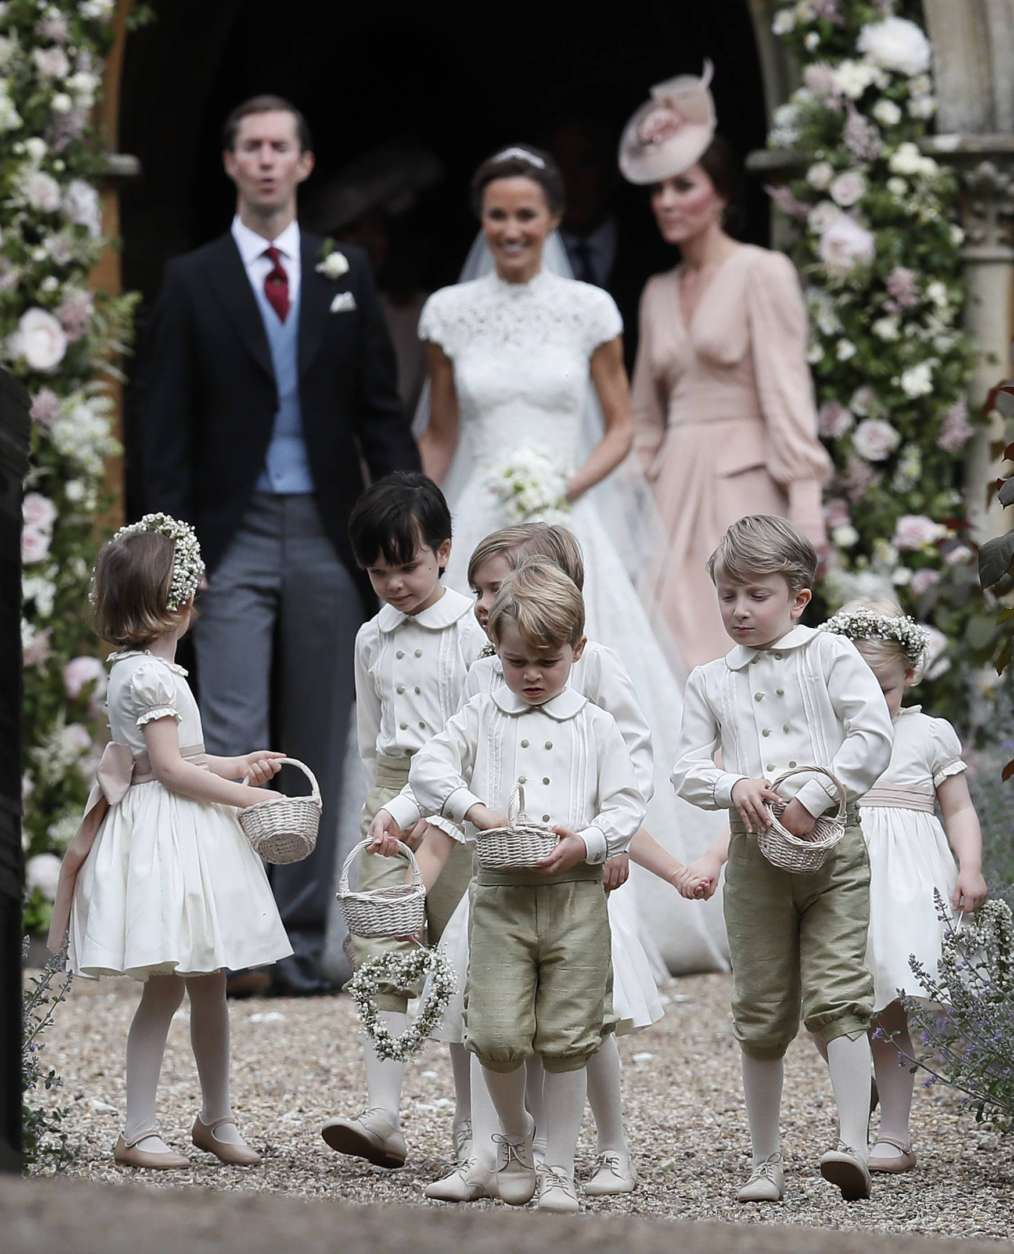 Prince George, center, stands with other flower boys and girls after the wedding of Pippa Middleton and James Matthews at St Mark's Church in Englefield, England Saturday, May 20, 2017. Middleton, the sister of Kate, Duchess of Cambridge married hedge fund manager James Matthews in a ceremony Saturday where her niece and nephew Prince George and Princess Charlotte was in the wedding party, along with sister Kate and princes Harry and William. (AP Photo/Kirsty Wigglesworth, Pool)